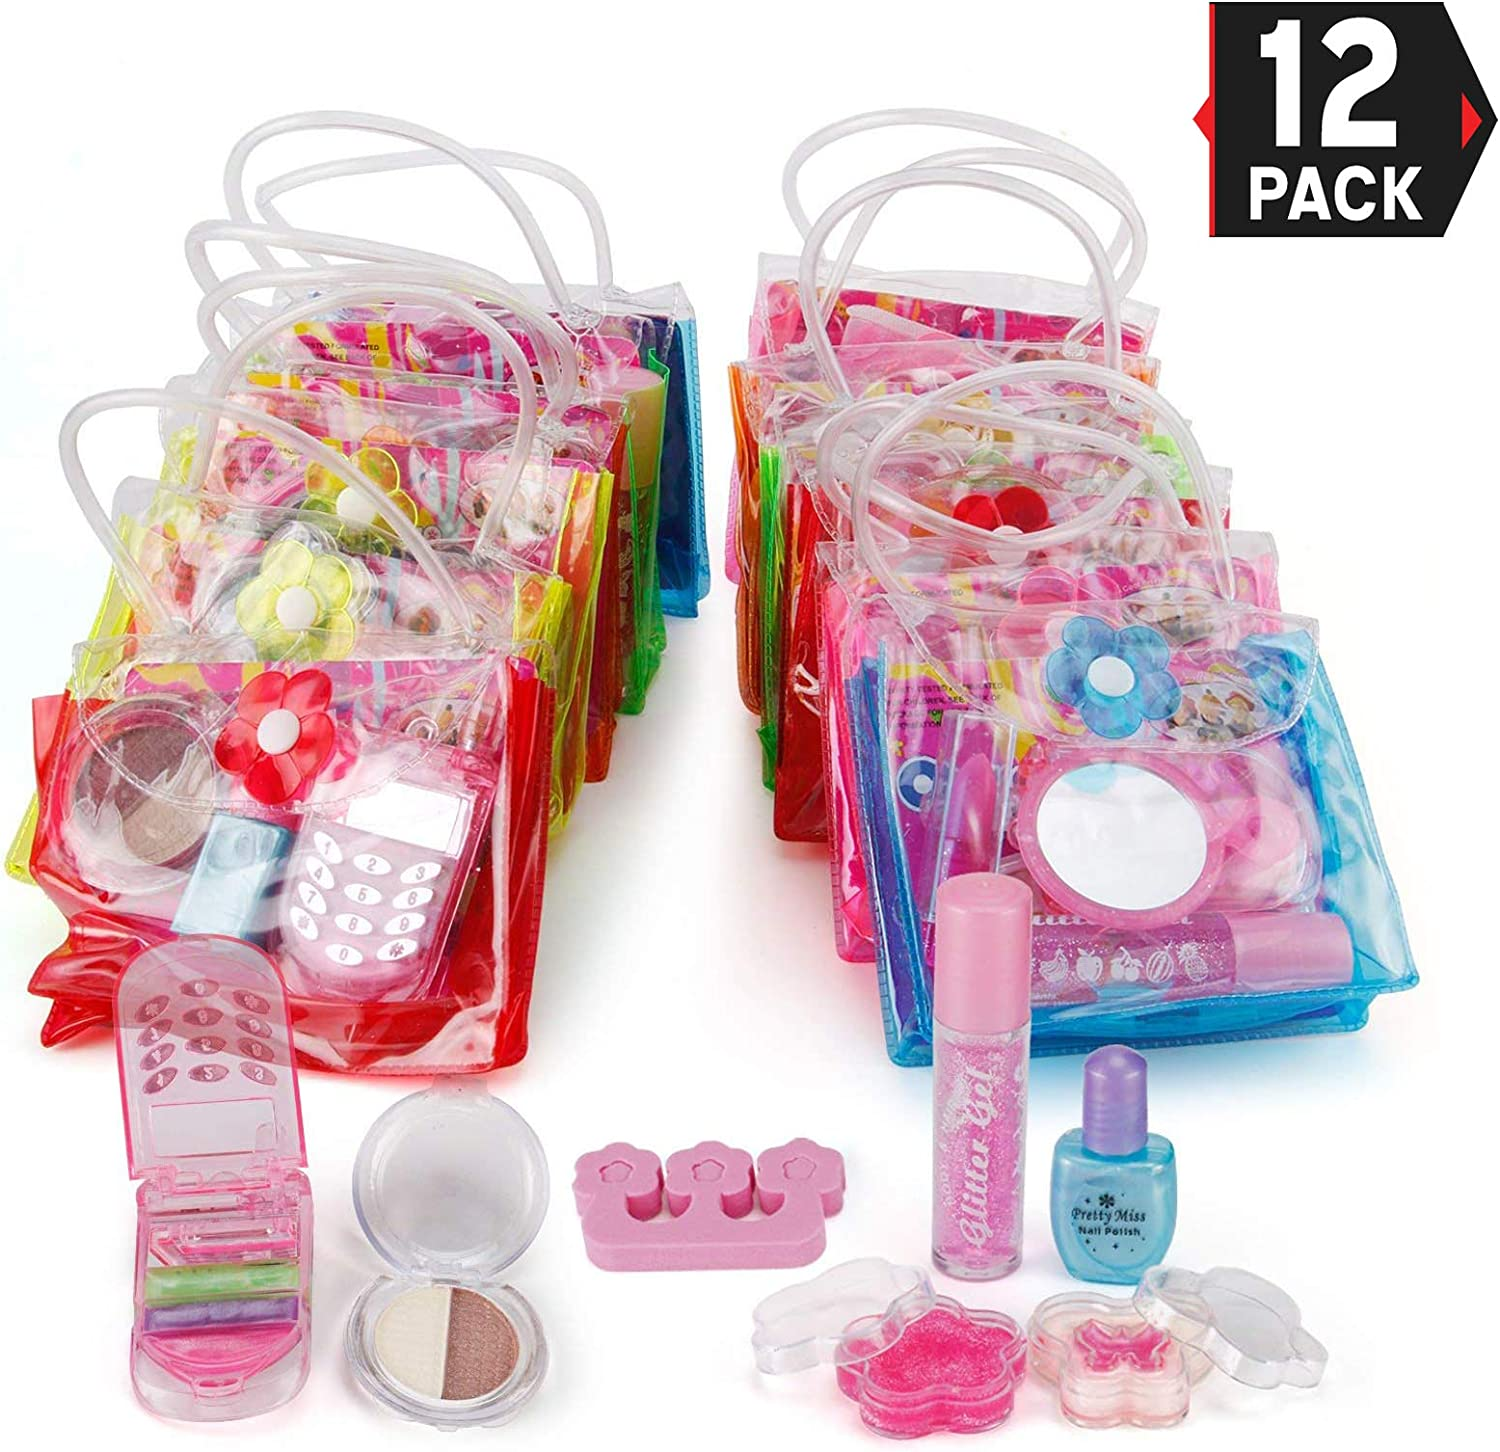 Liberty Imports 12 Petite Girls Cosmetic Sets in Bag - Washable and Non Toxic Real Makeup Kits - Bulk Pretend Play Party Favors Gifts (1 Dozen)